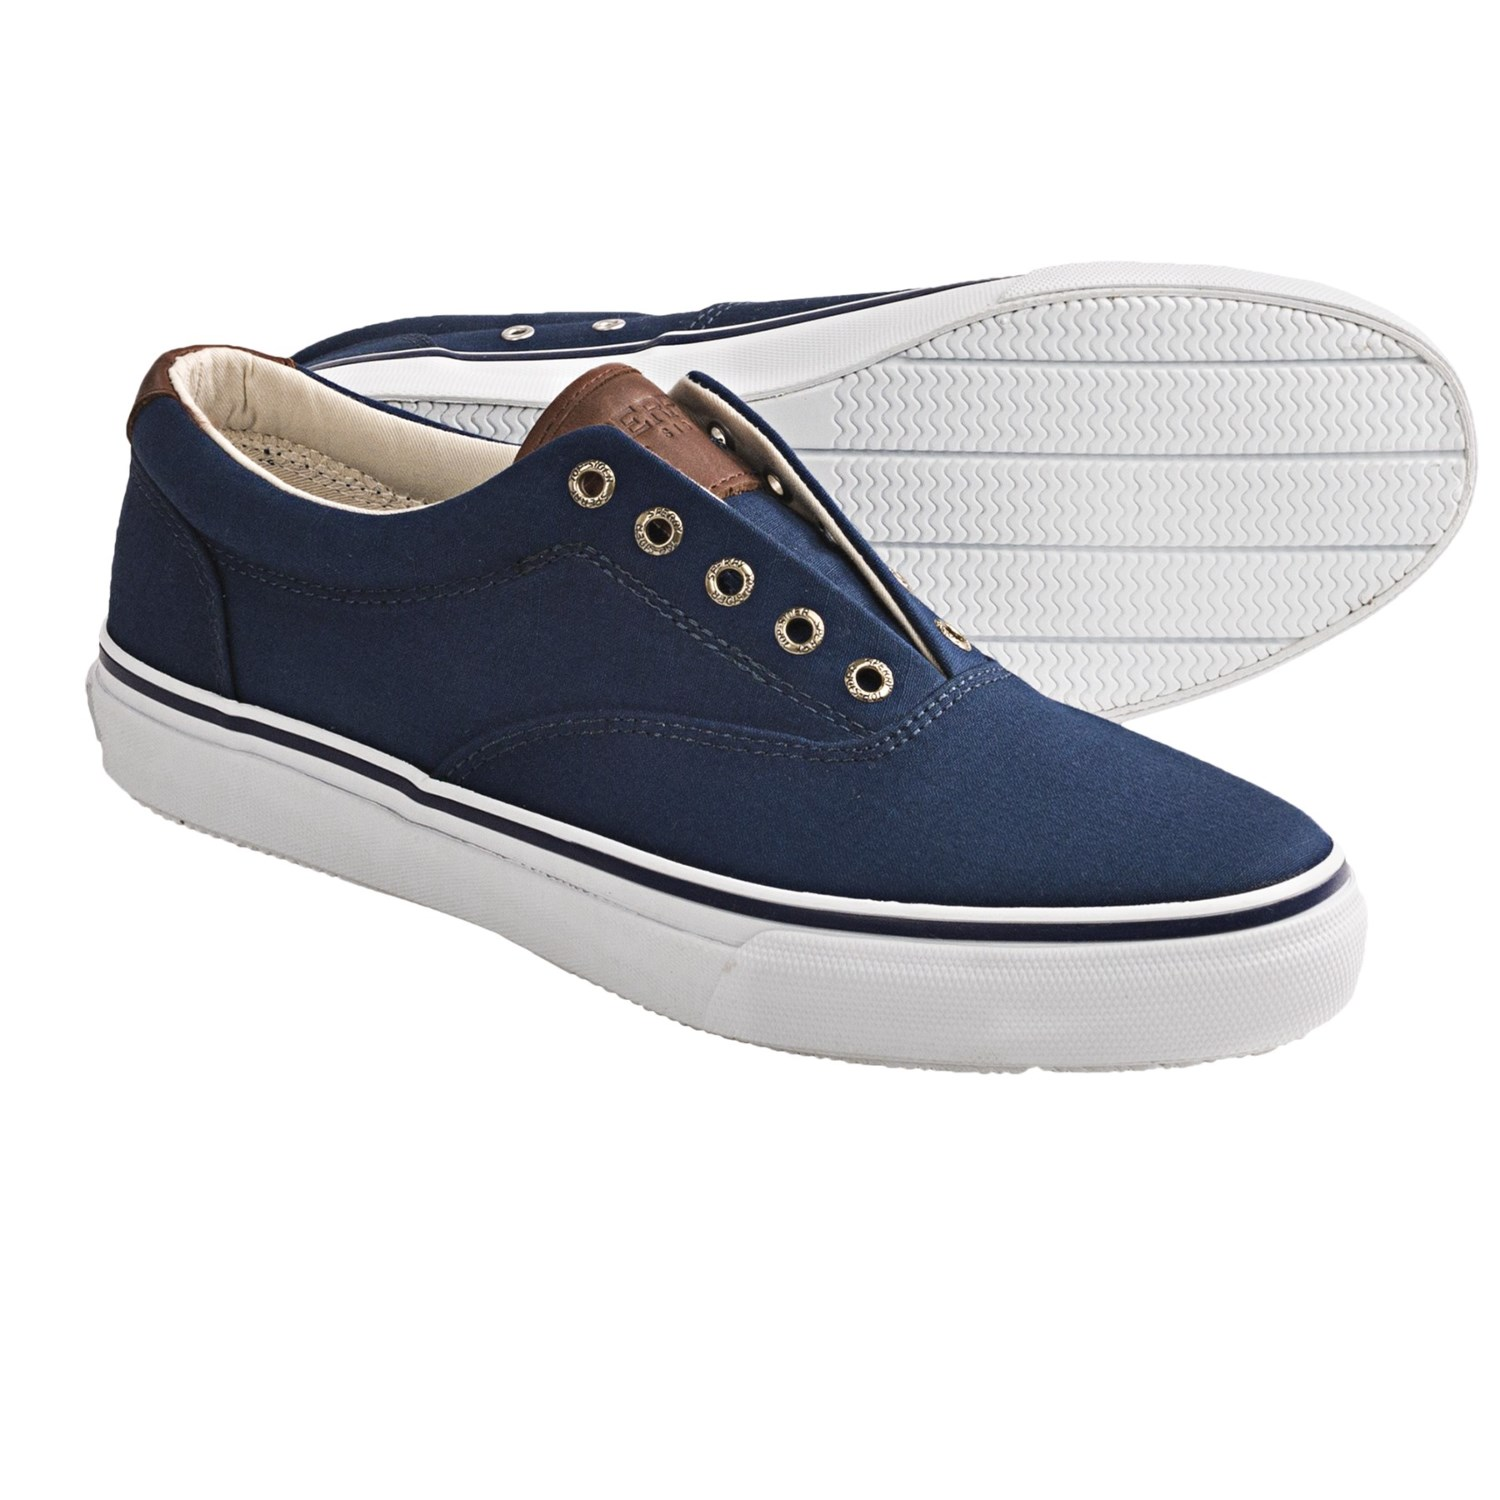 sperry top sider striper canvas shoes laceless for